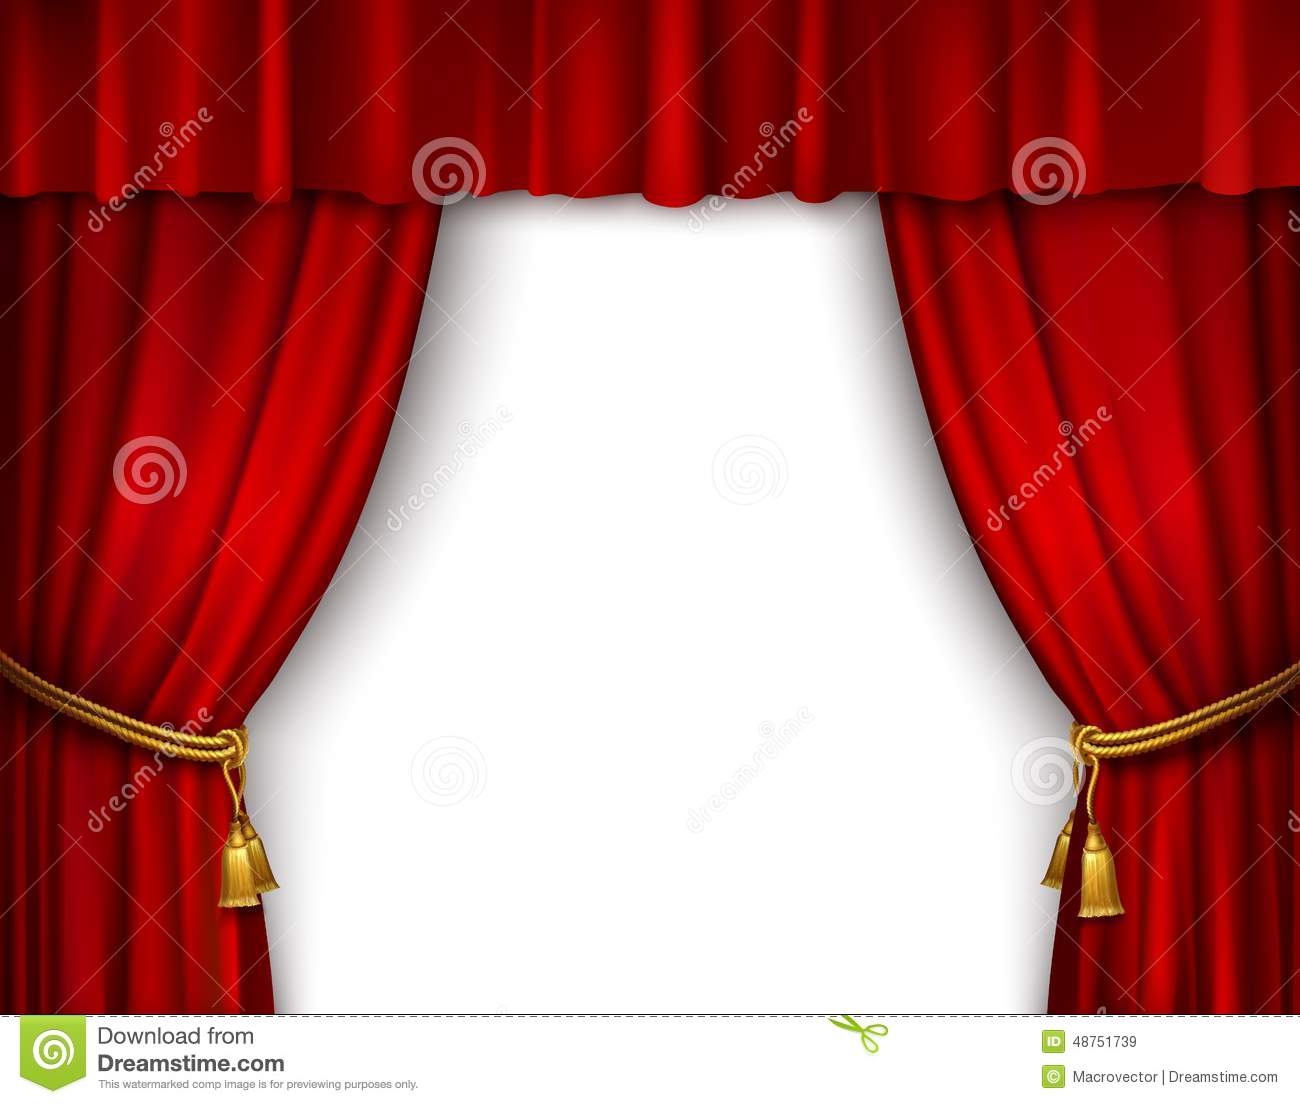 Open theater drapes or stage curtains royalty free stock image image - Royalty Free Vector Curtain Gold Illustration Isolated Open Red Stage Textile Theater